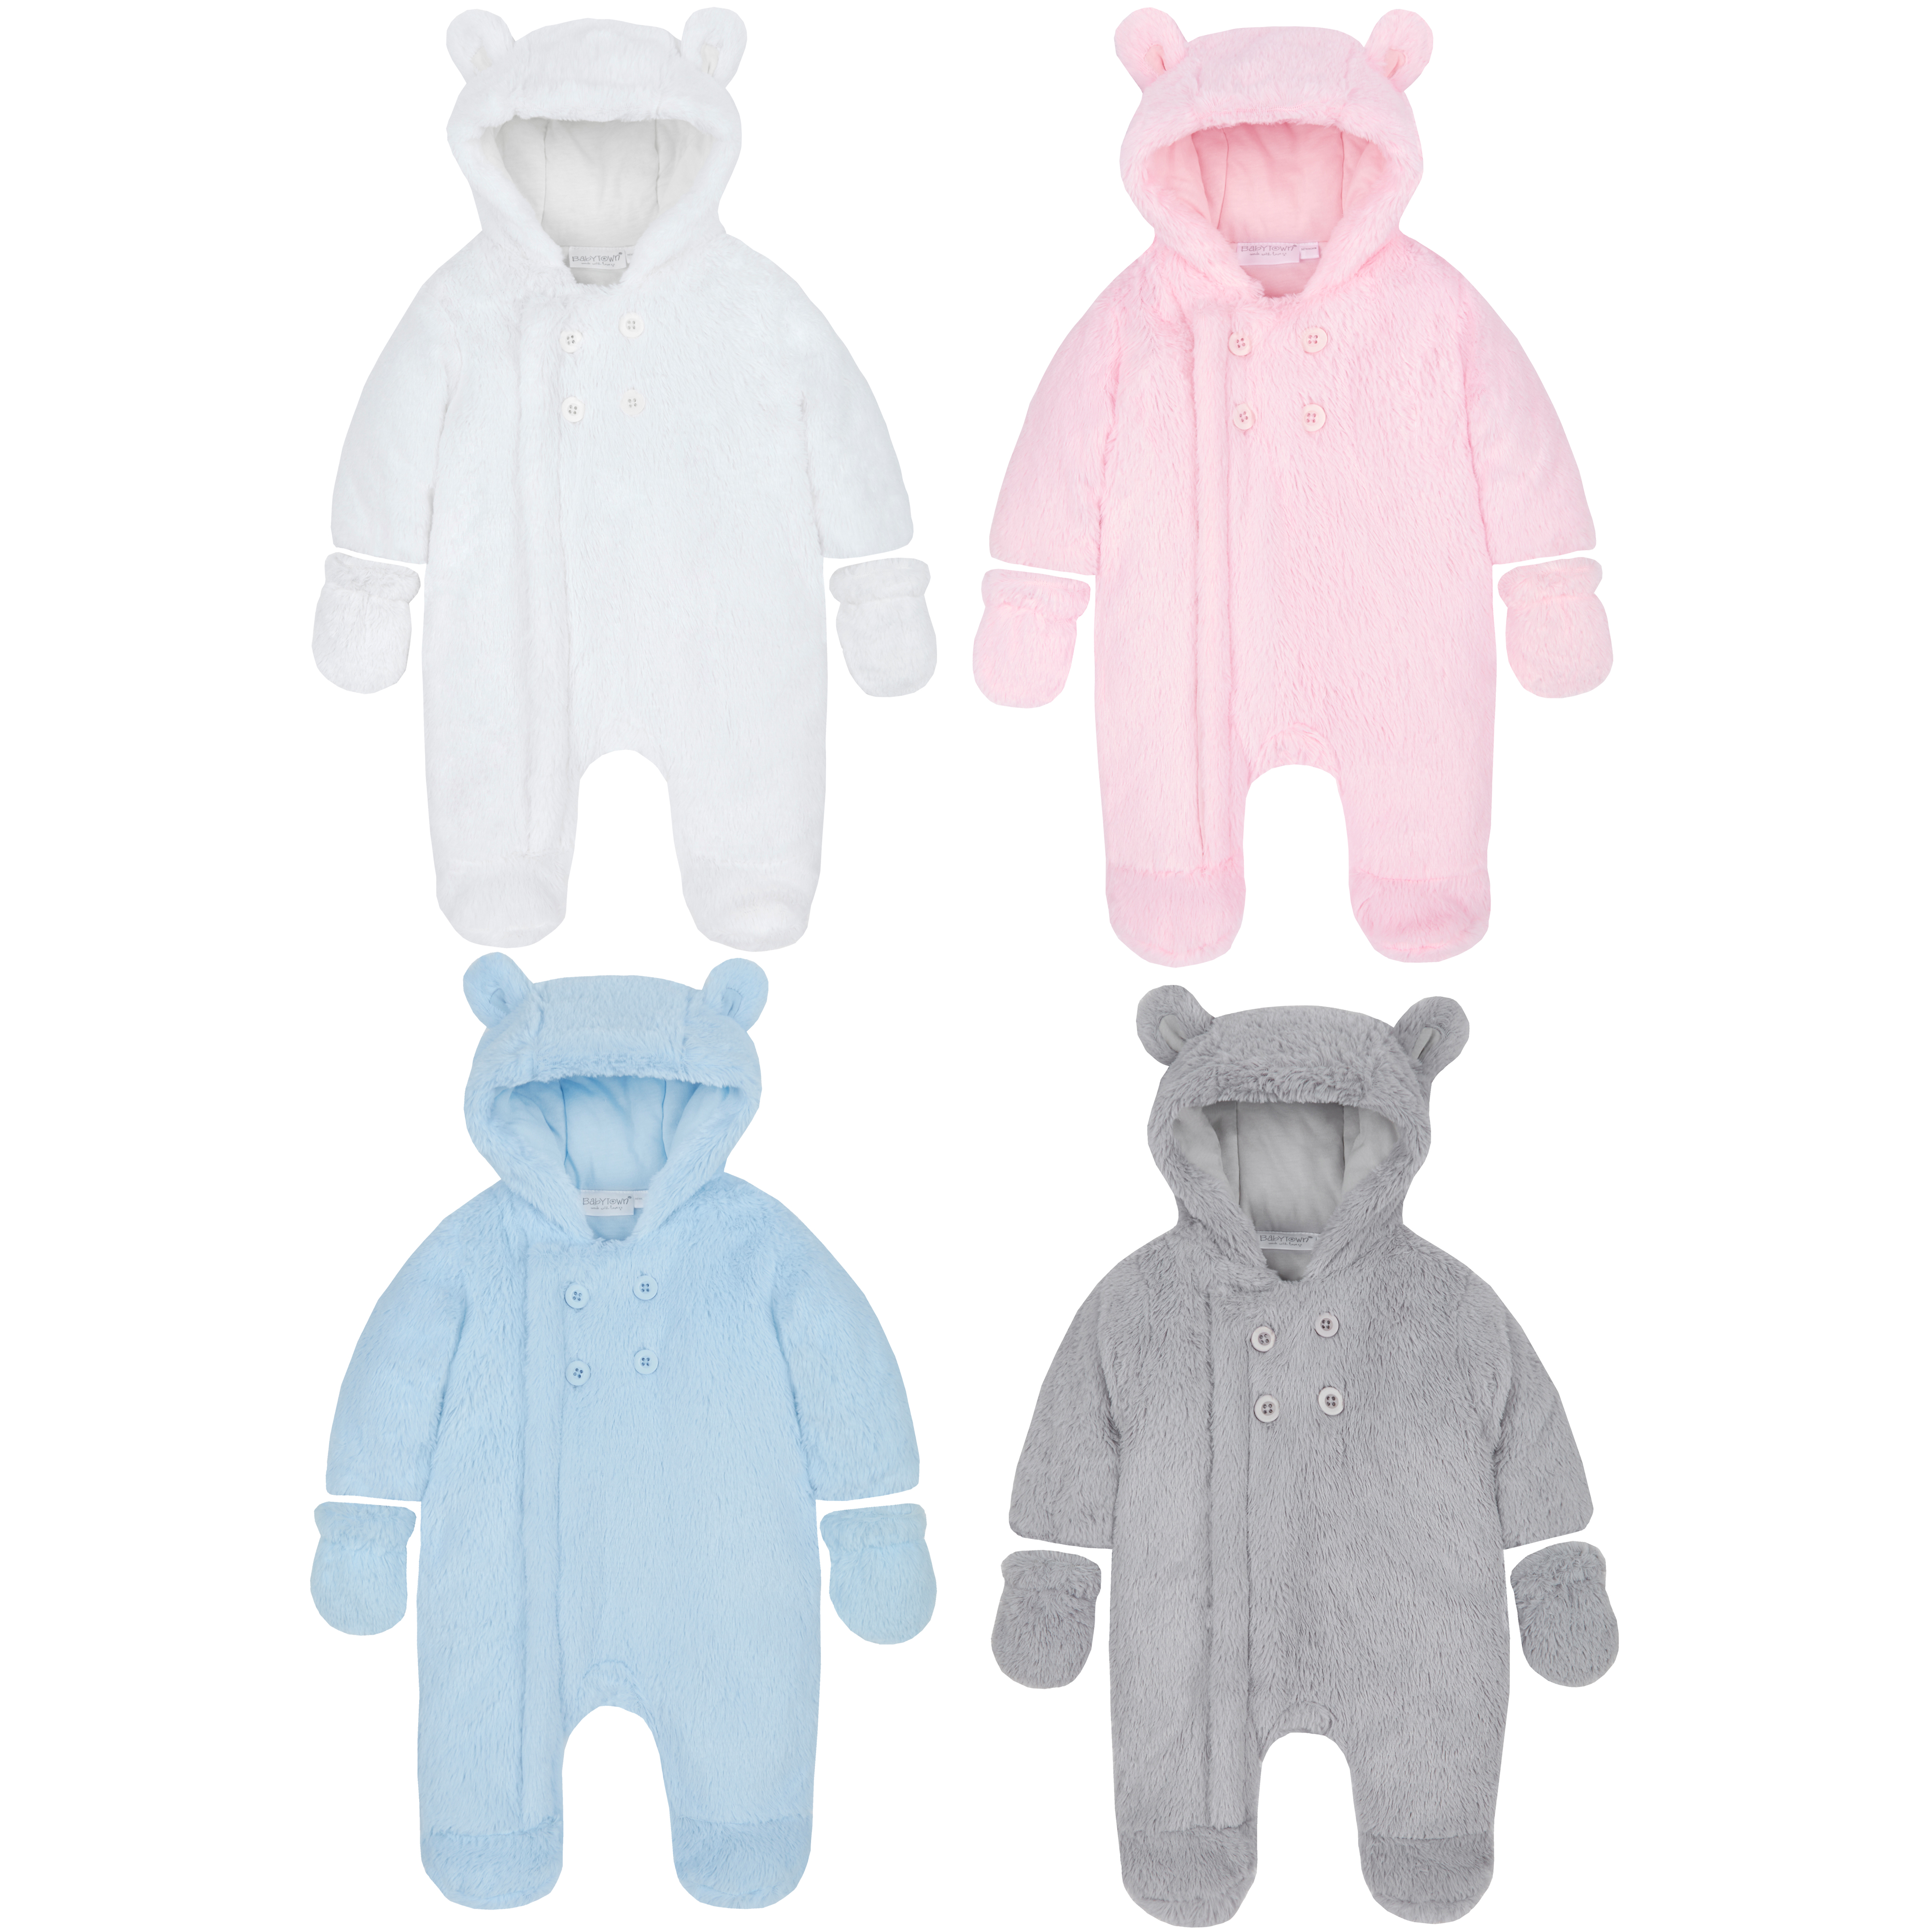 ac04a7435026 Baby Unisex Pram Suit Newborn Body Suit All In One Fluffy Mittens ...